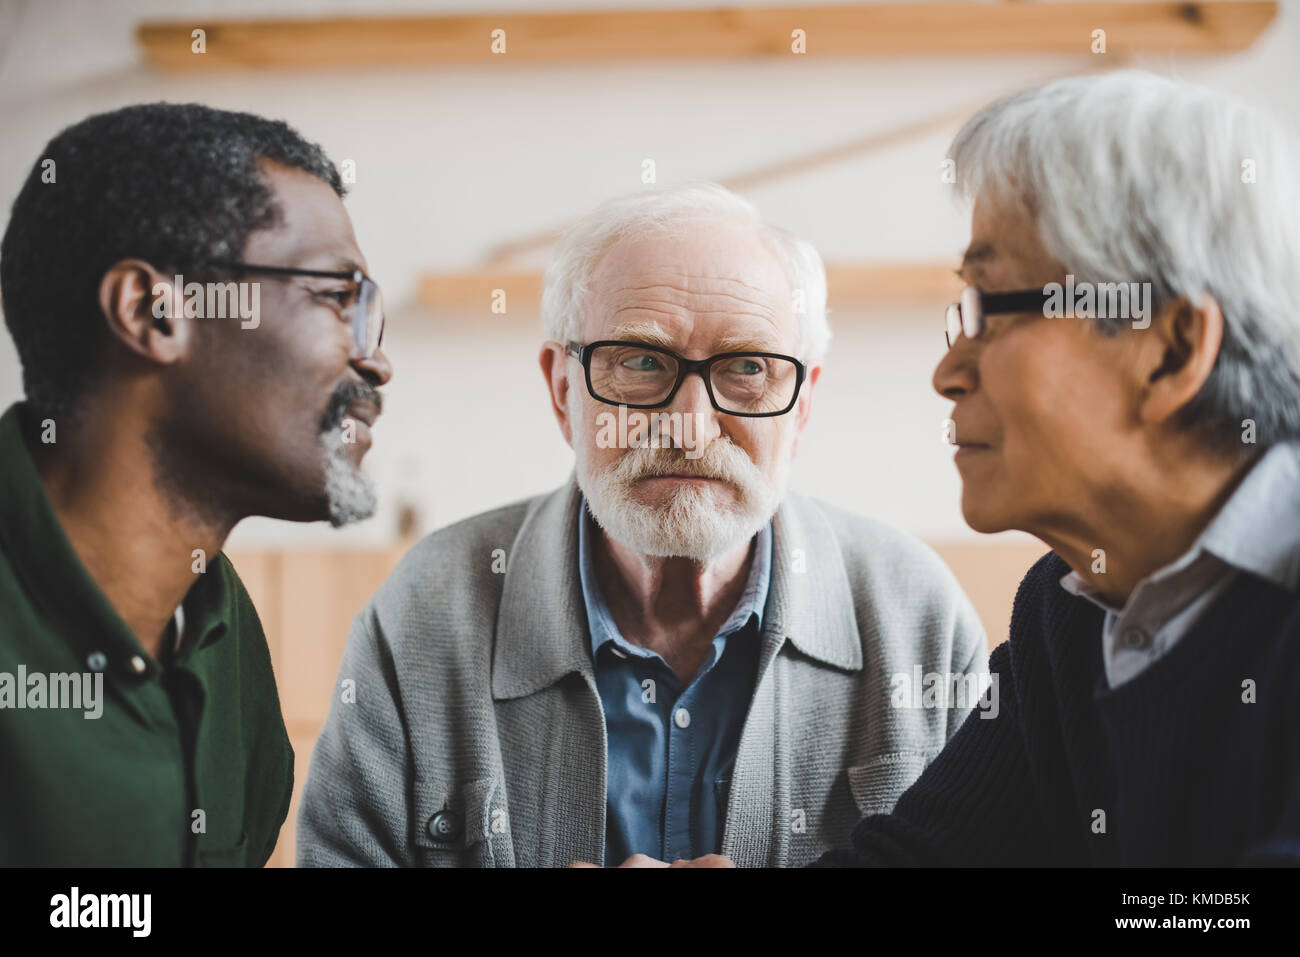 senior friends playing staring contest - Stock Image